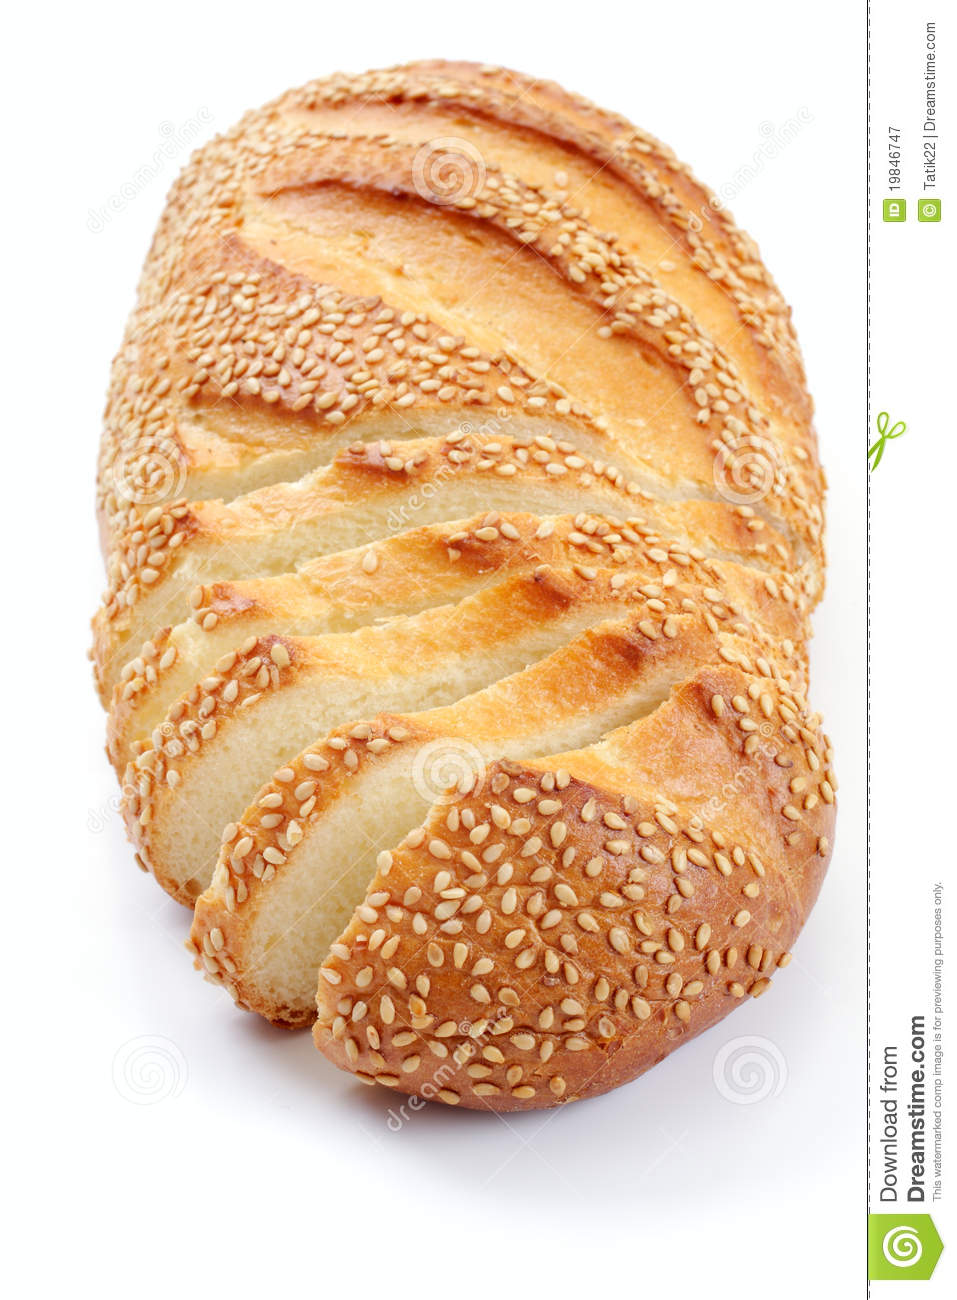 Bread With A Sesame, Over White Royalty Free Stock ...